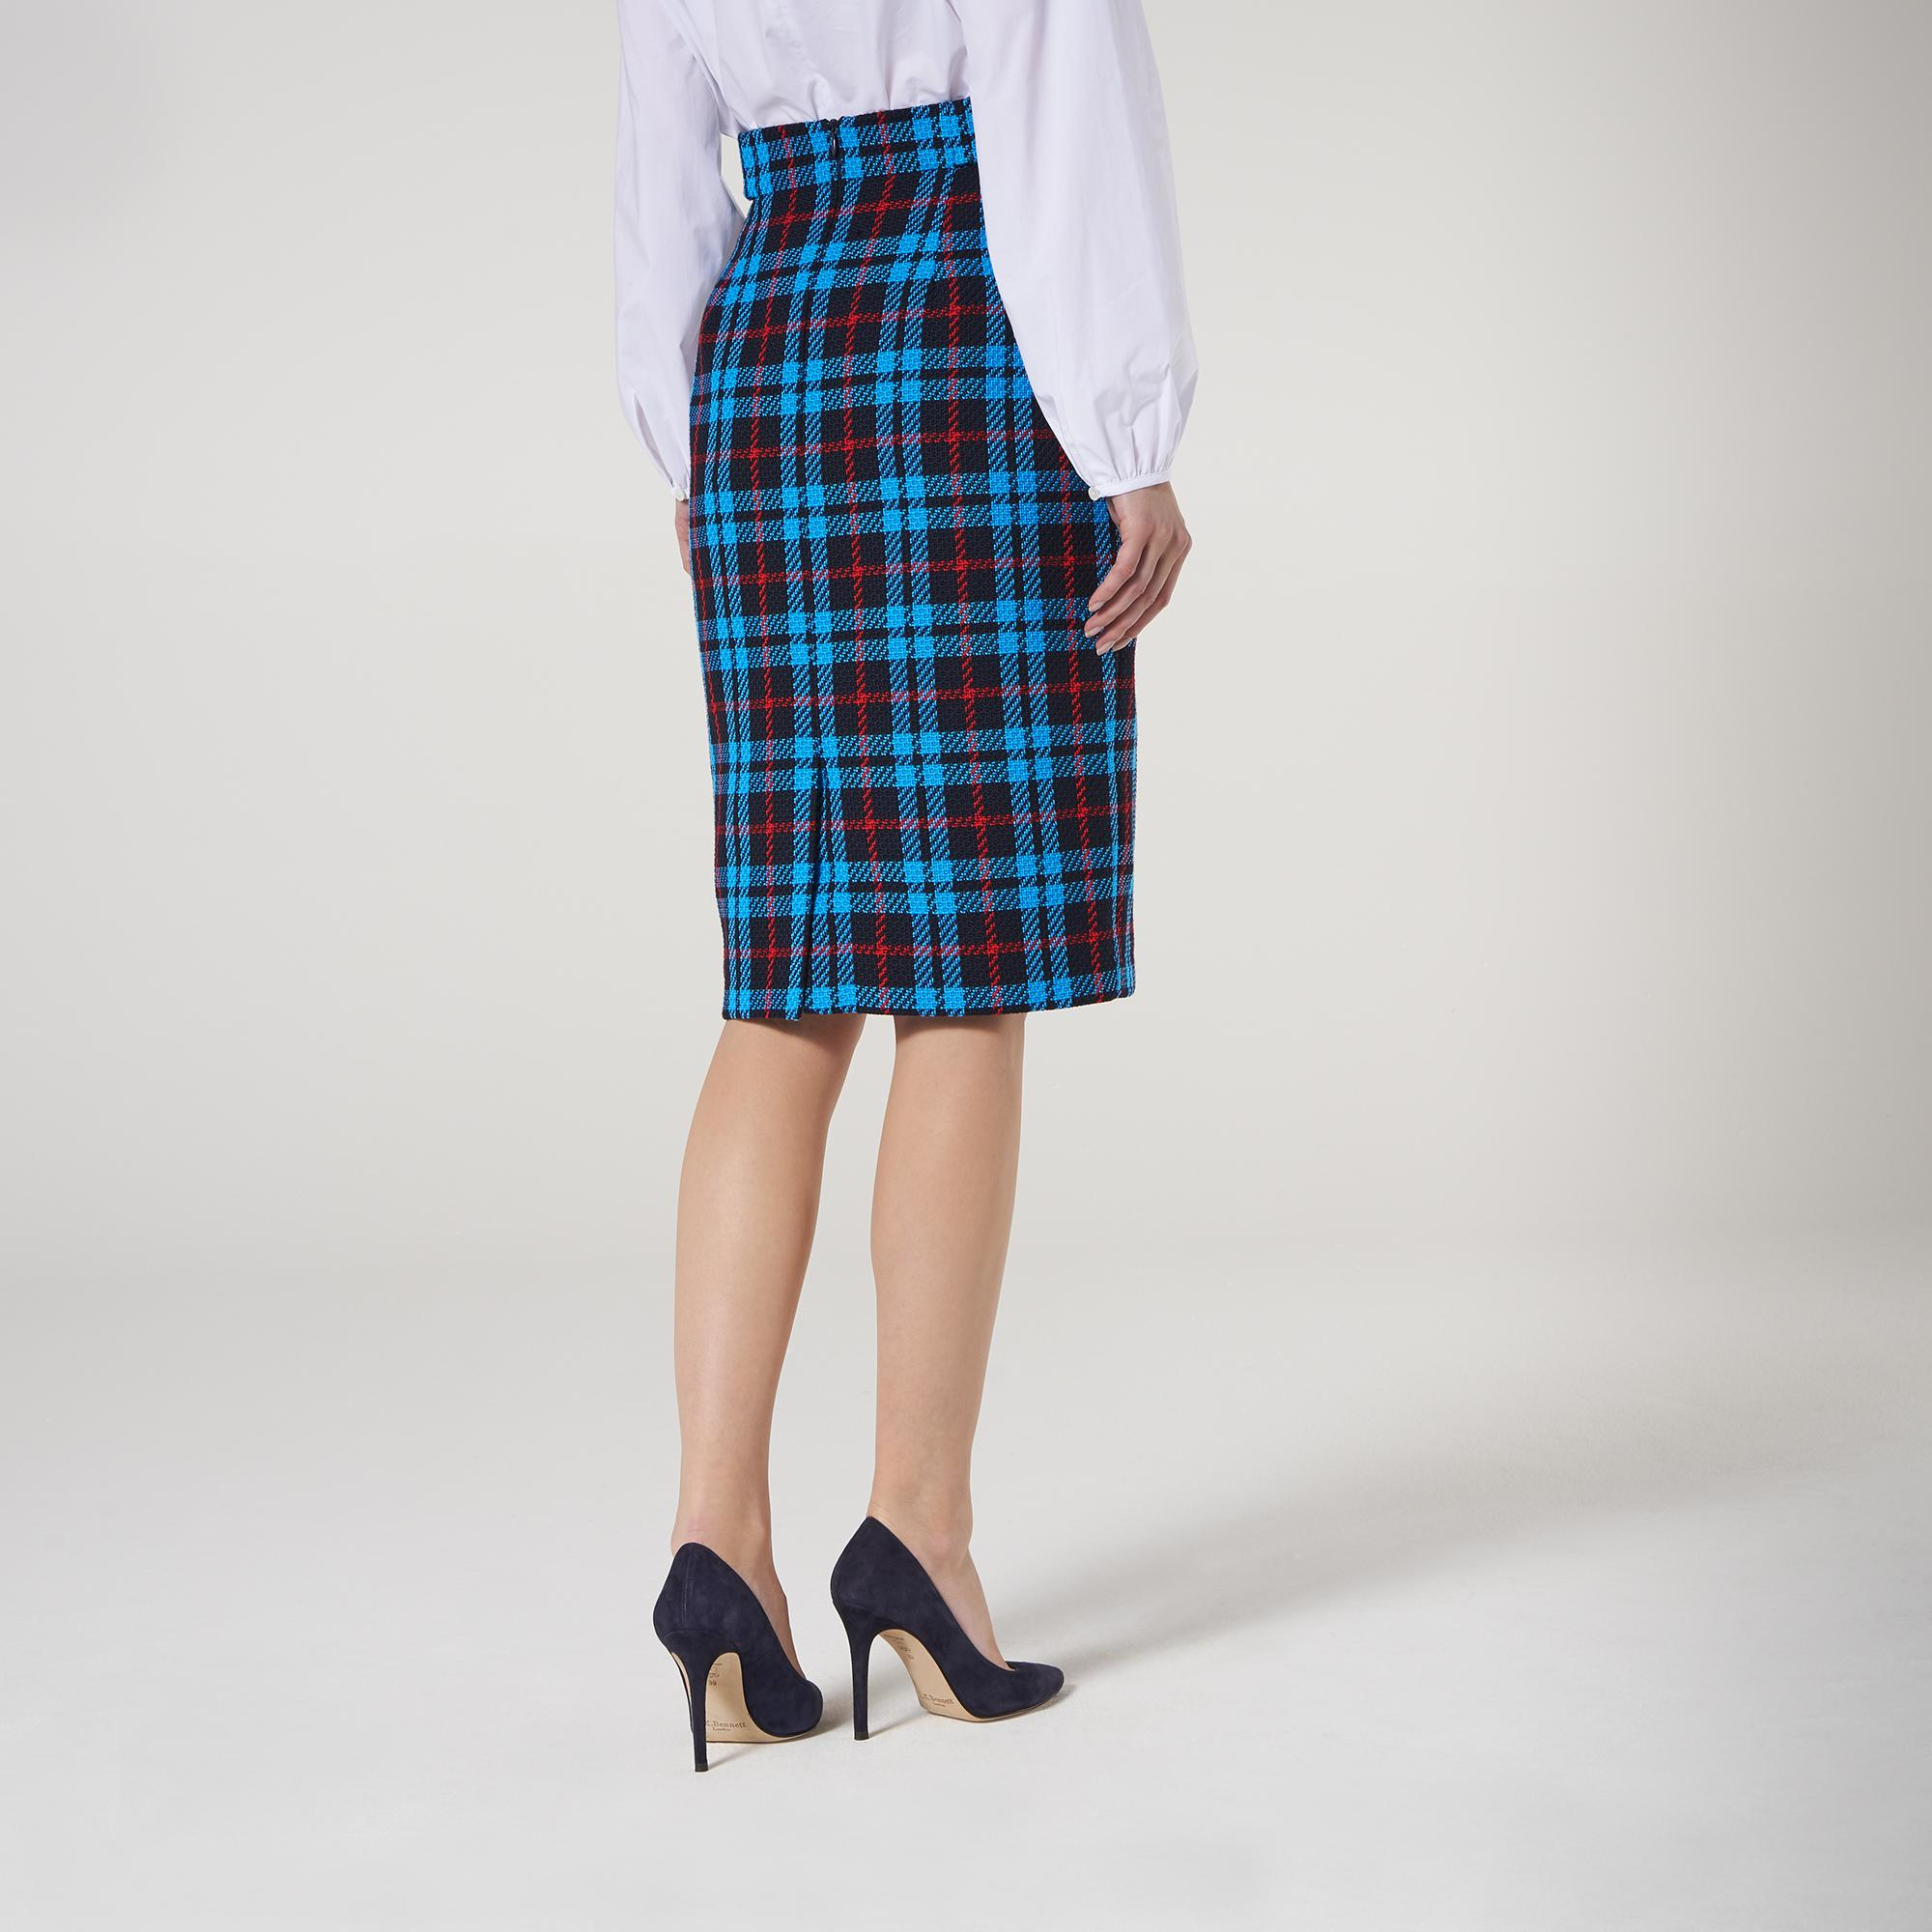 Miroe Blue Plaid Skirt New Arrivals Clothing Collections